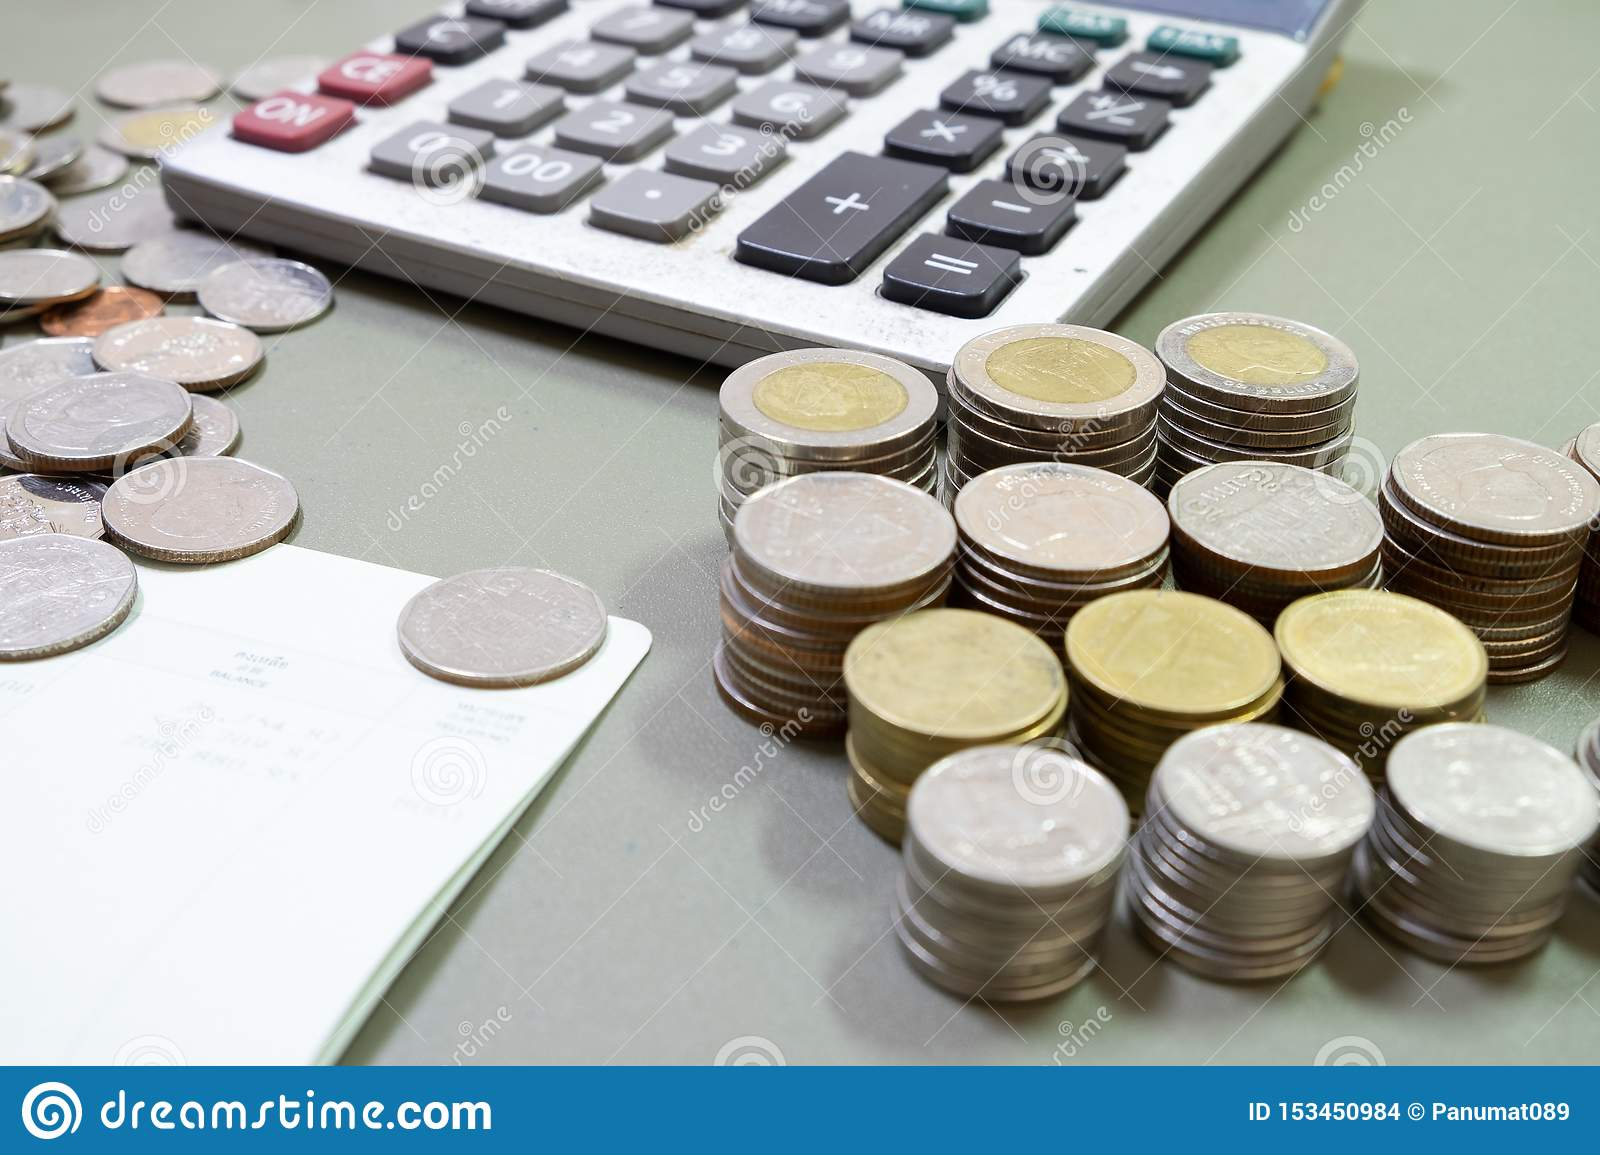 Business concept of making or saving money on investment